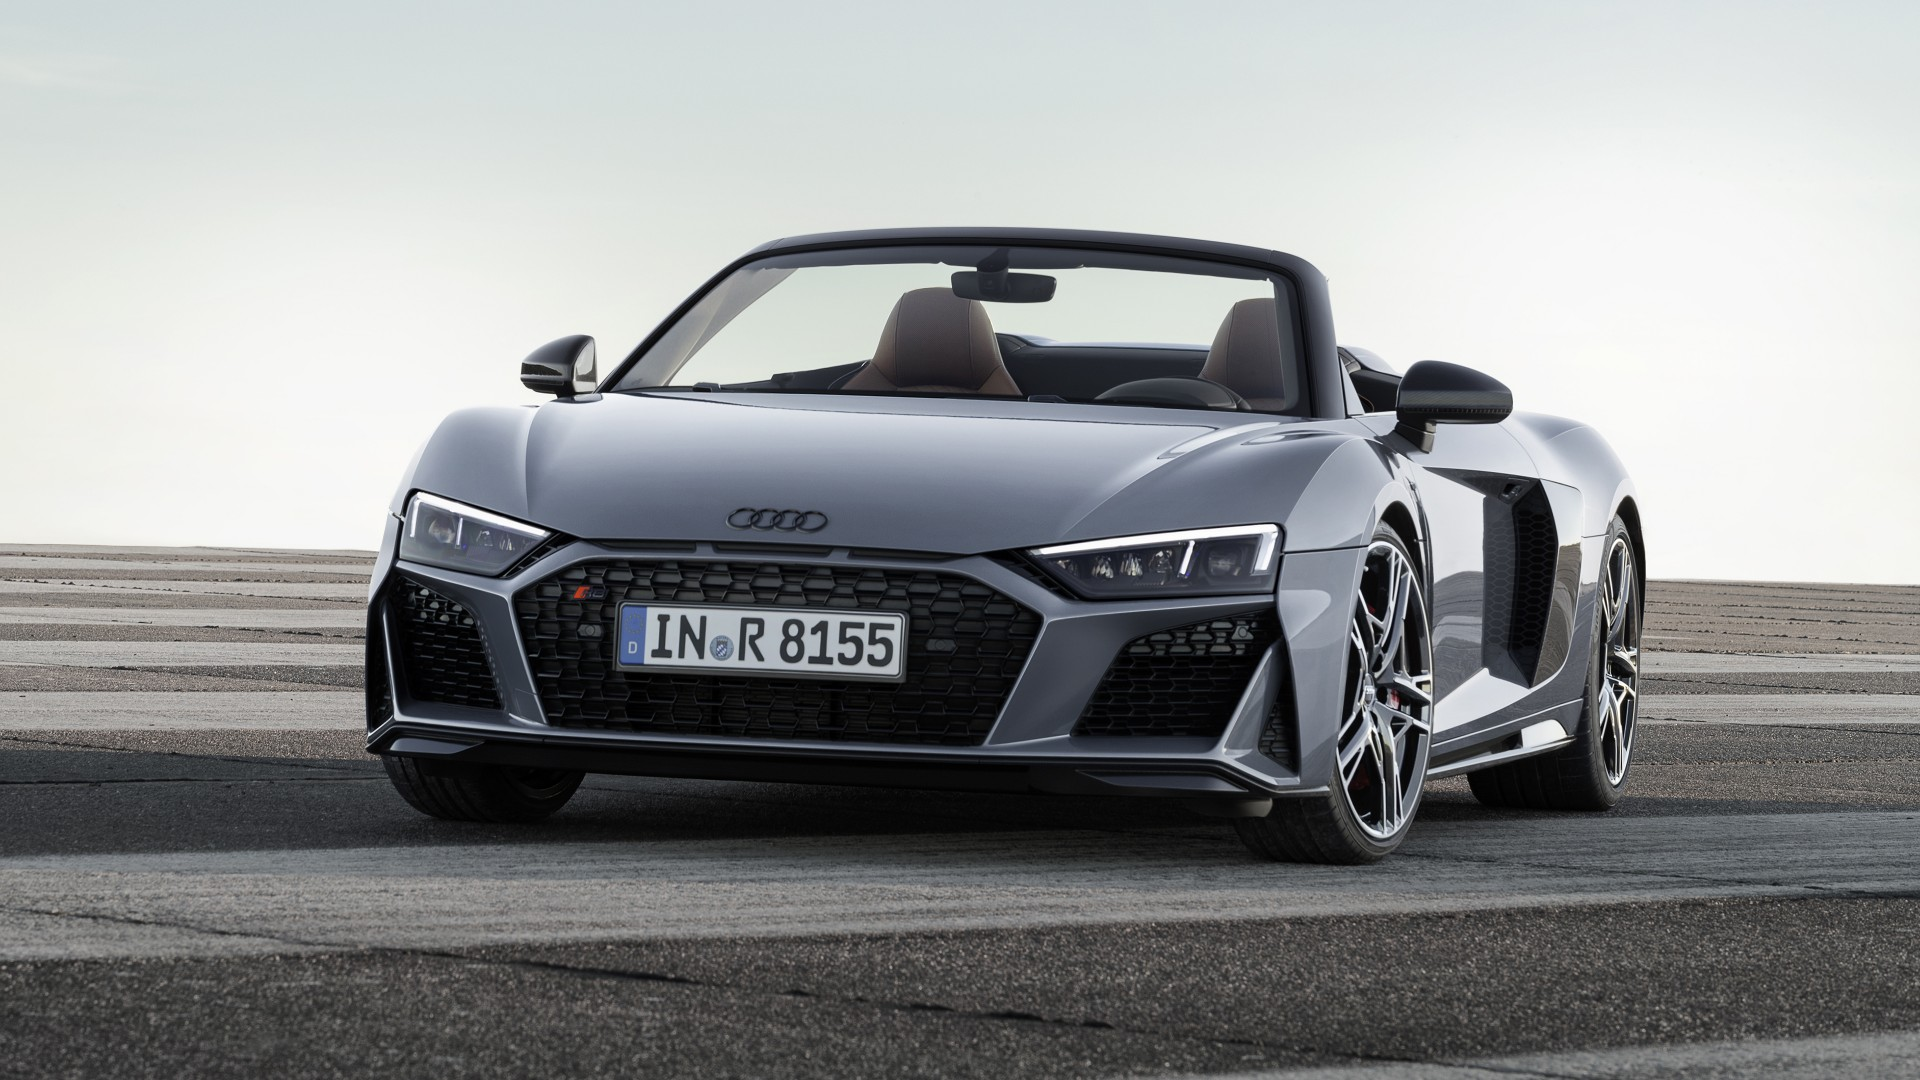 Audi R8 Spyder V10 2019 4K Wallpaper | HD Car Wallpapers ...